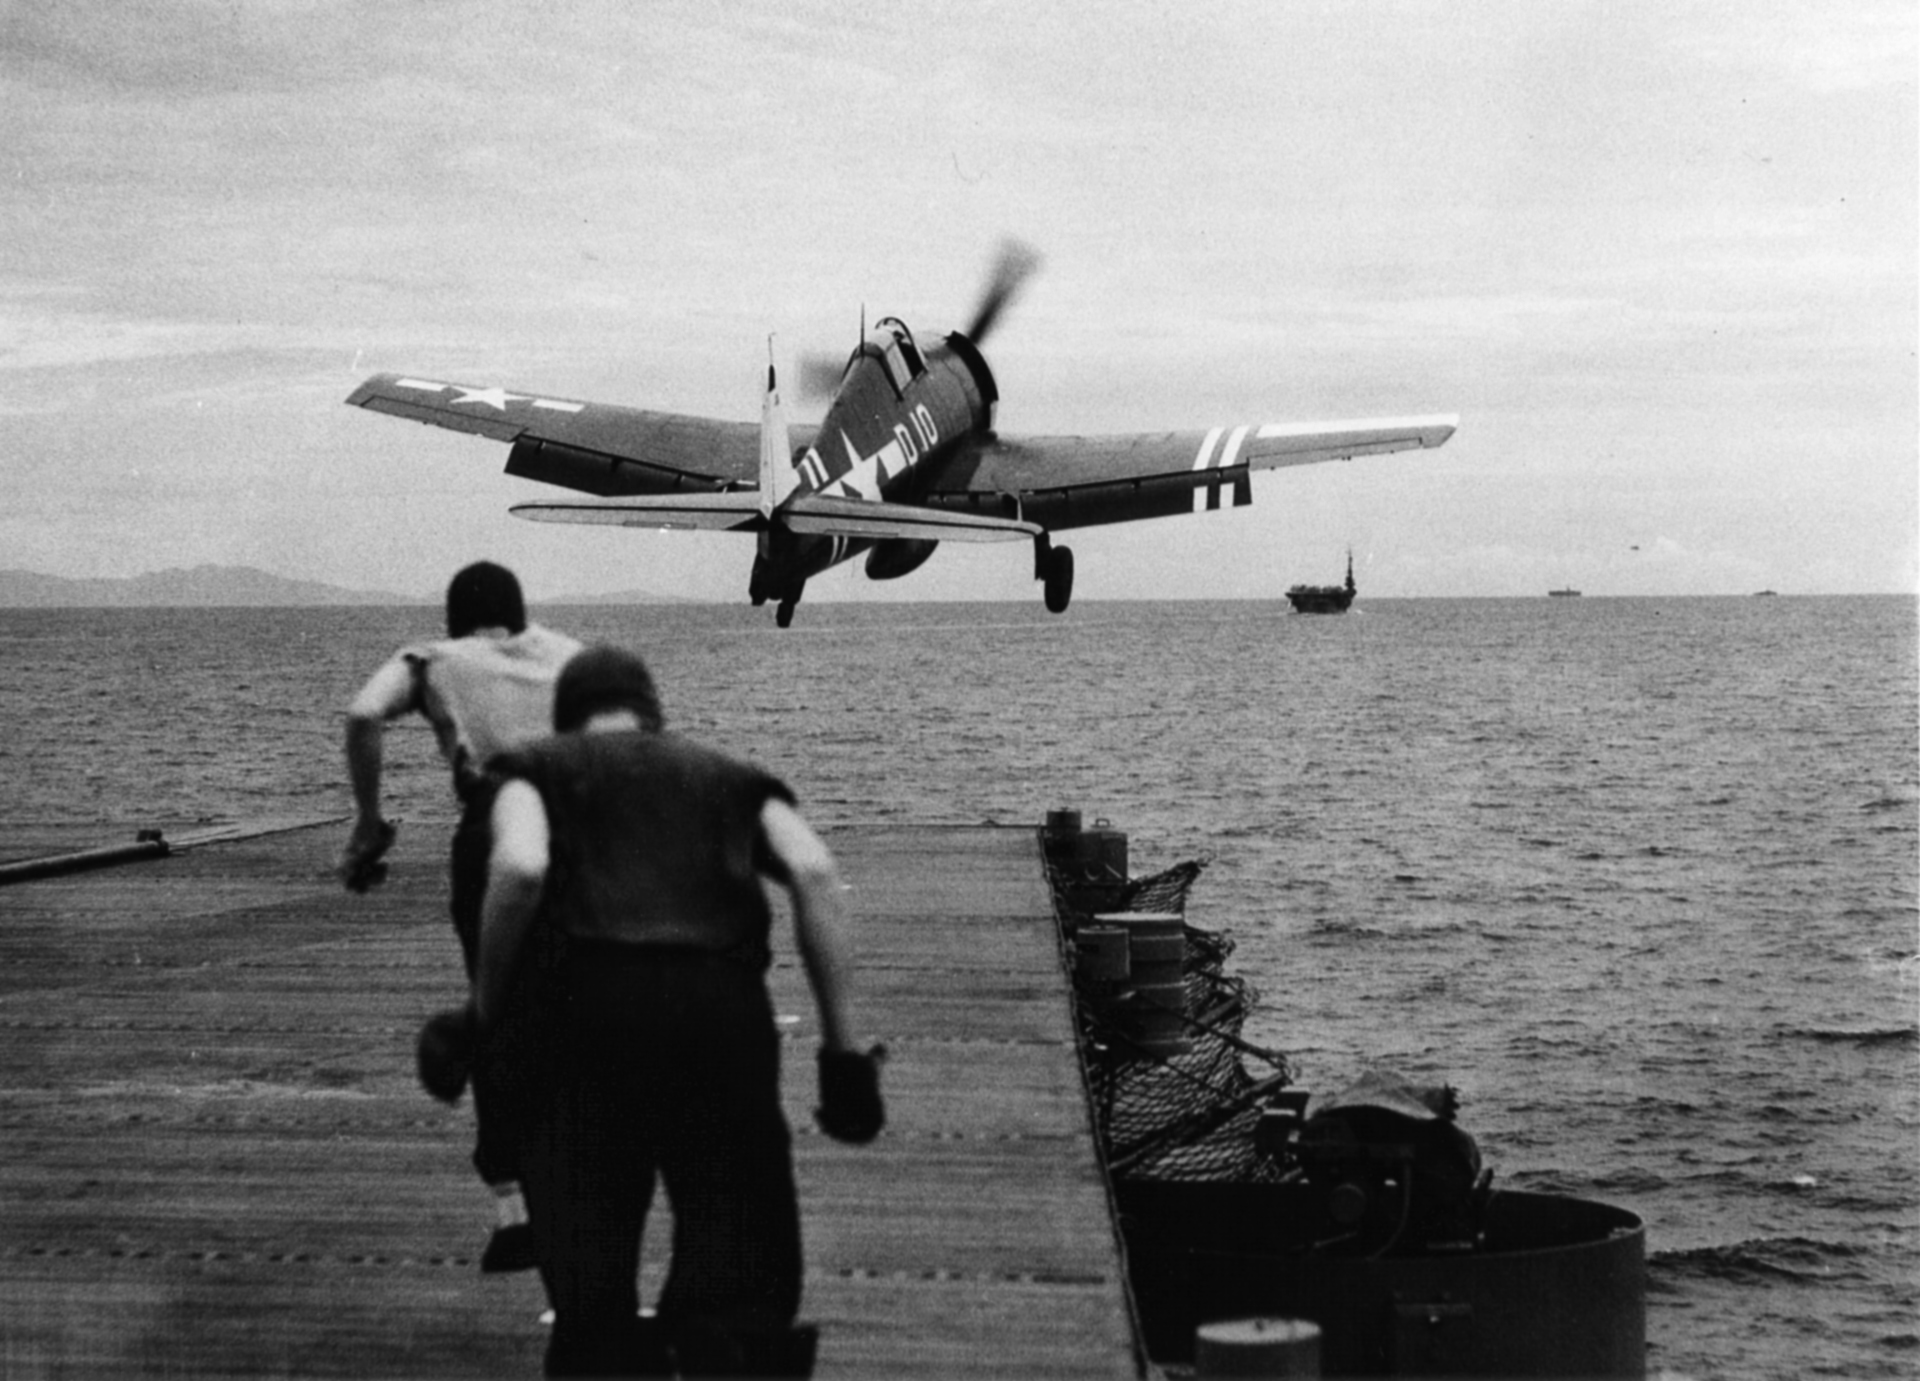 Grumman F6F 5 Hellcat VF 40 White D10 launched from CVE 27 USS Suwanee 30th Aug 1945 01